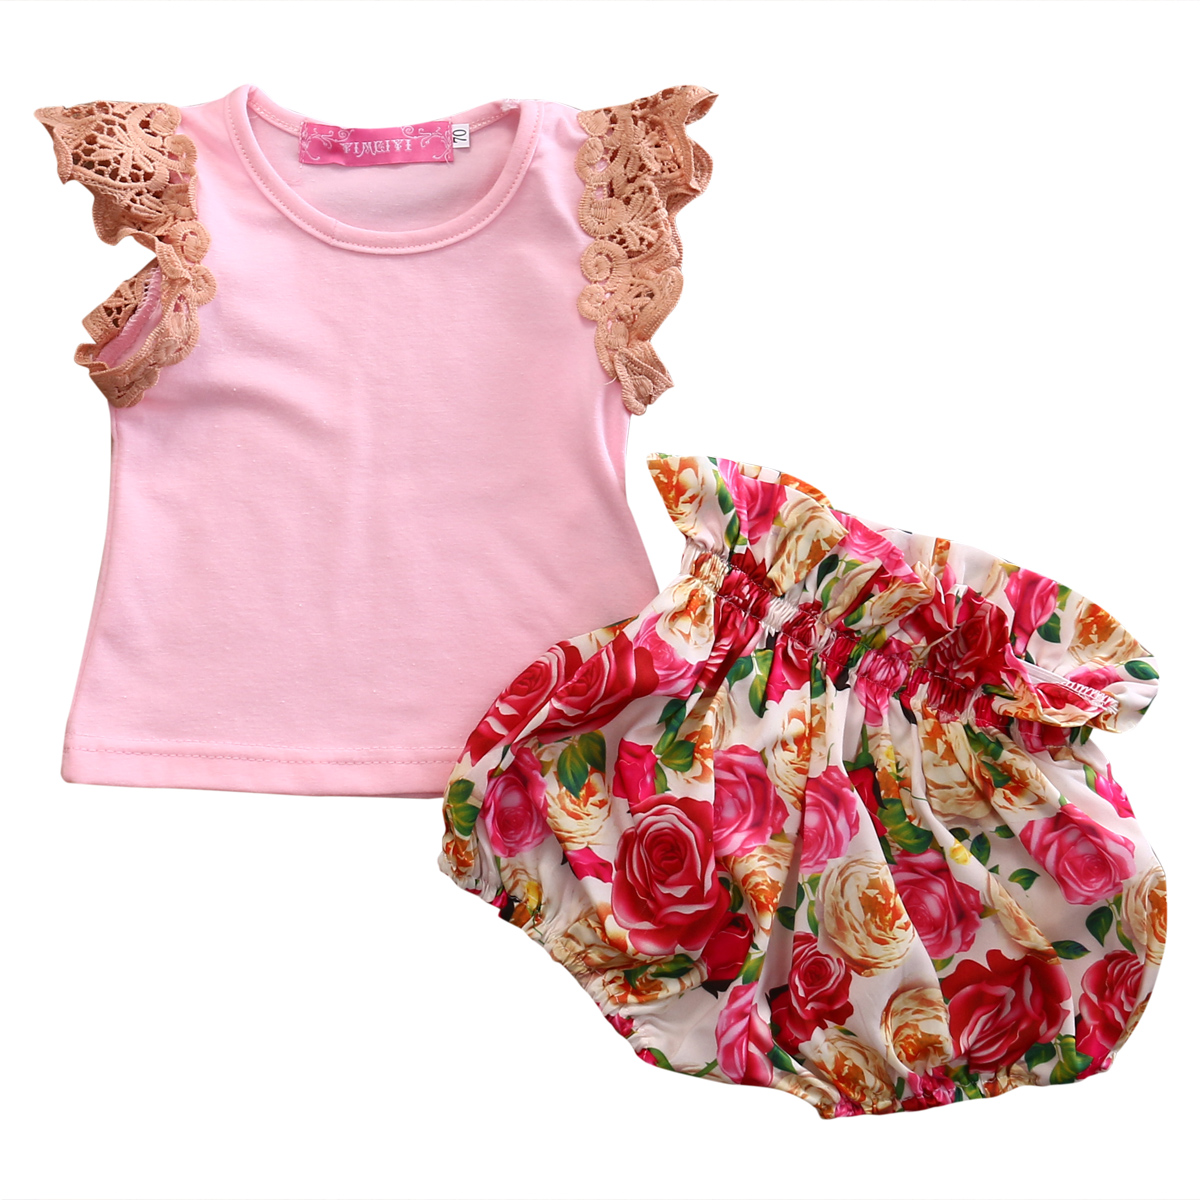 0-3Y Toddler Baby Girls Clothing Set 2017 Summer Lace T-shirt Tops+Floral Shorts Bottom Pants 2PCS Outfits Children Clothes Cute baby set girls stripe i woke up like this toddler shirt pants 2pcs outfits set